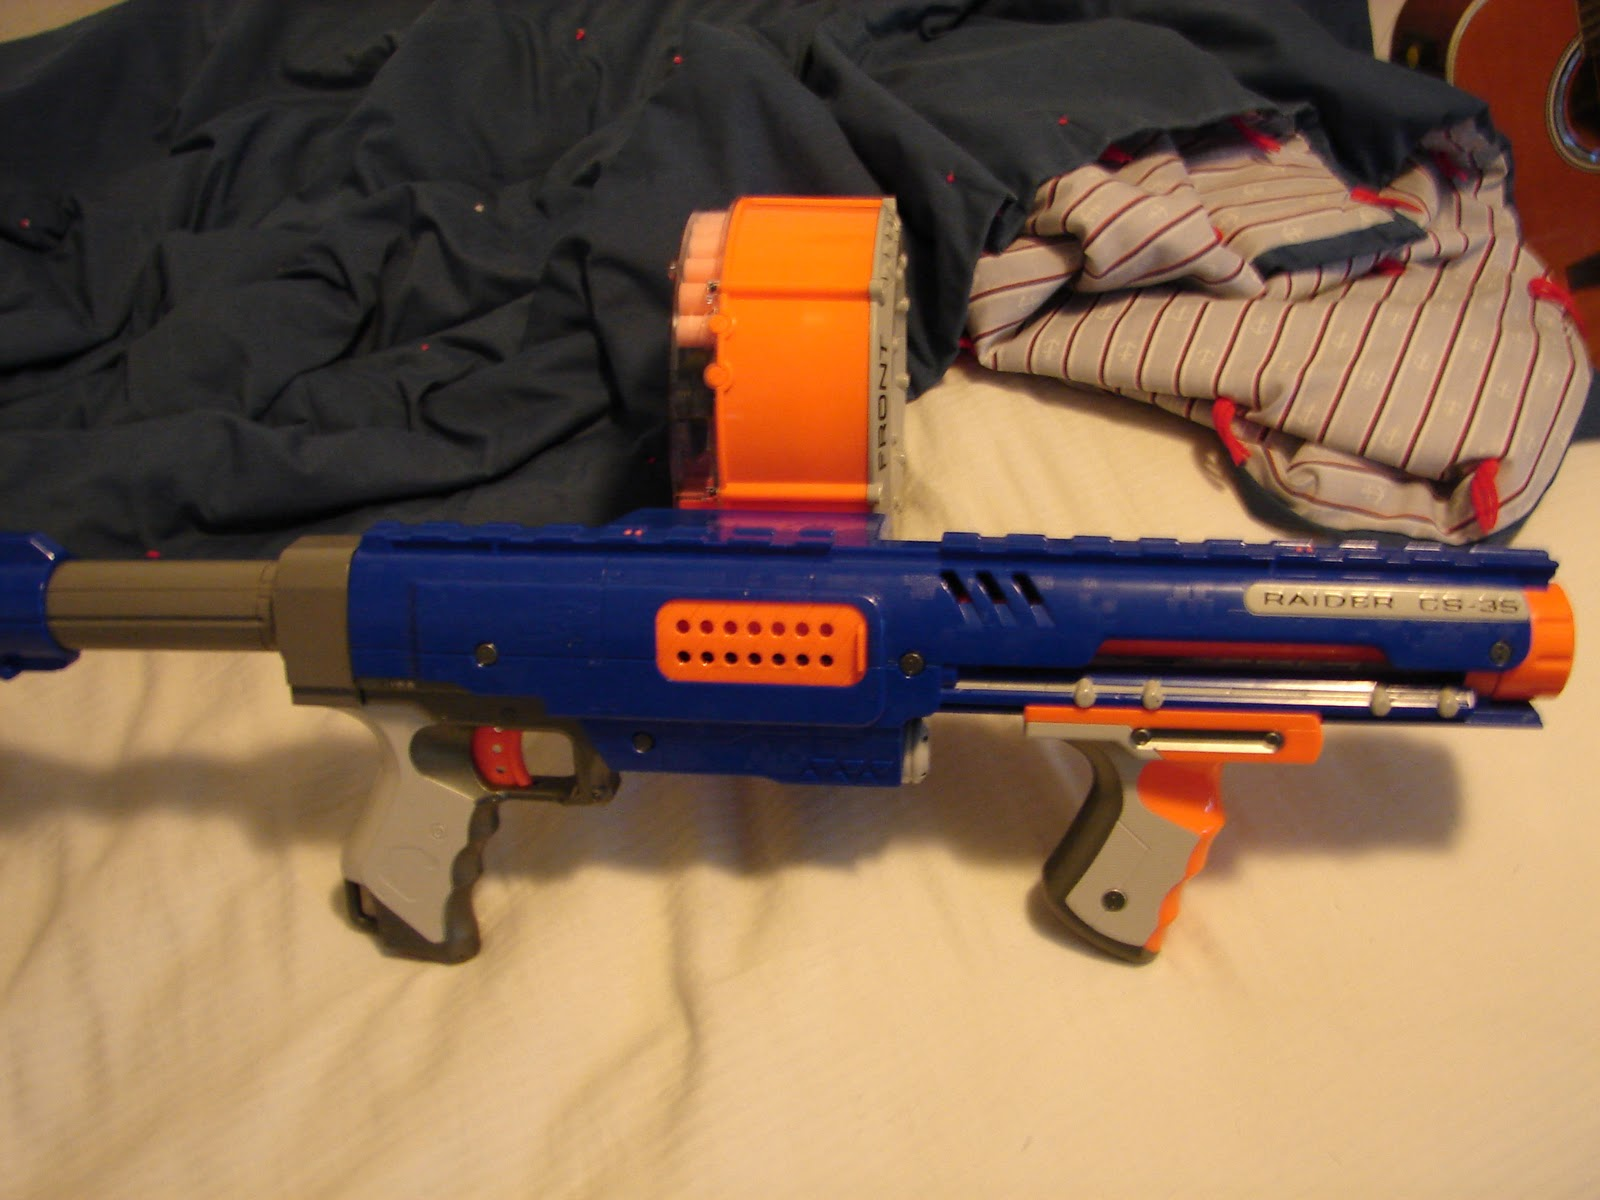 Pictures of all the nerf guns